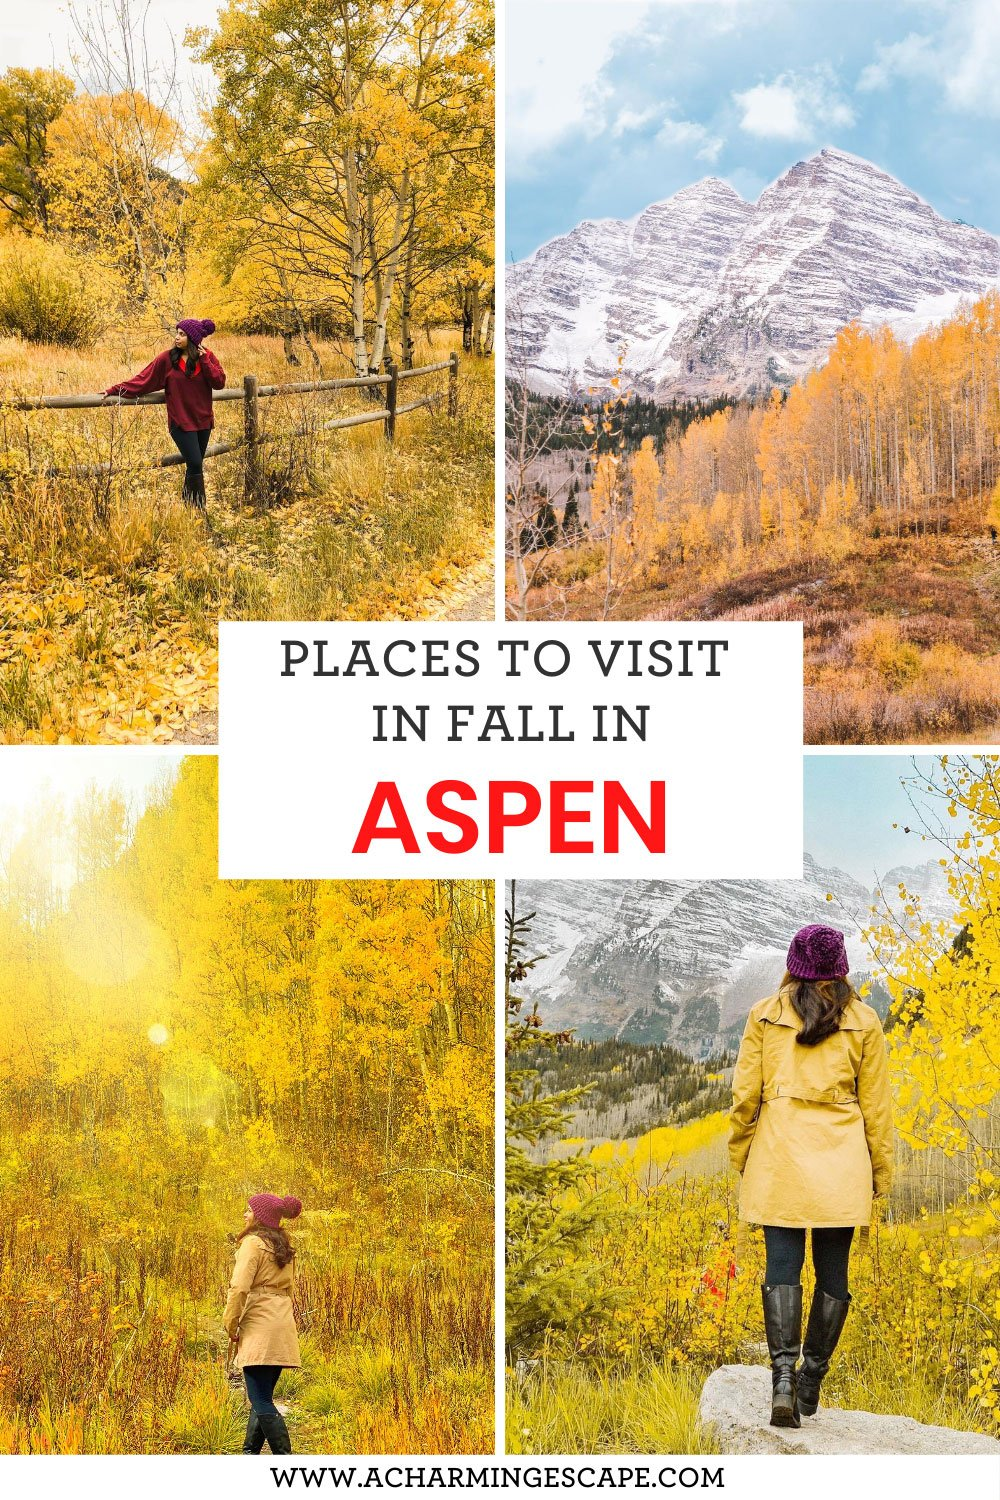 Places to visit in Aspen in Fall